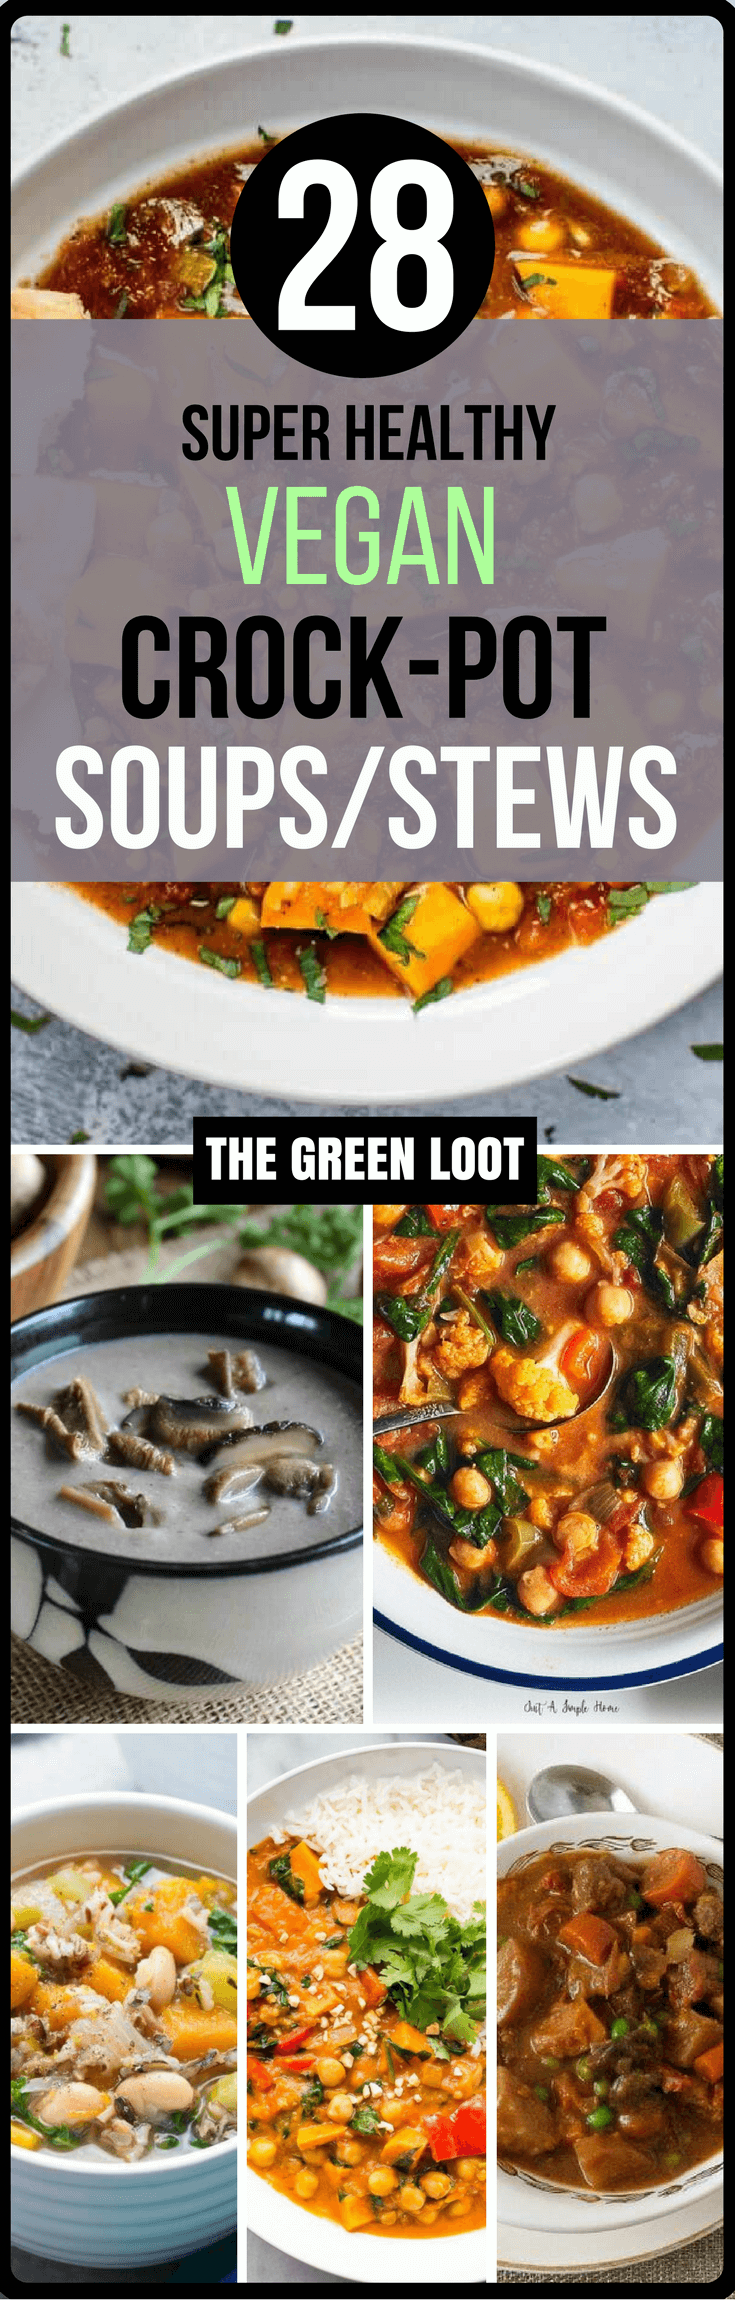 The best 28 vegan crockpot soups stews recipes easy for Healthy vegetarian crock pot recipes easy